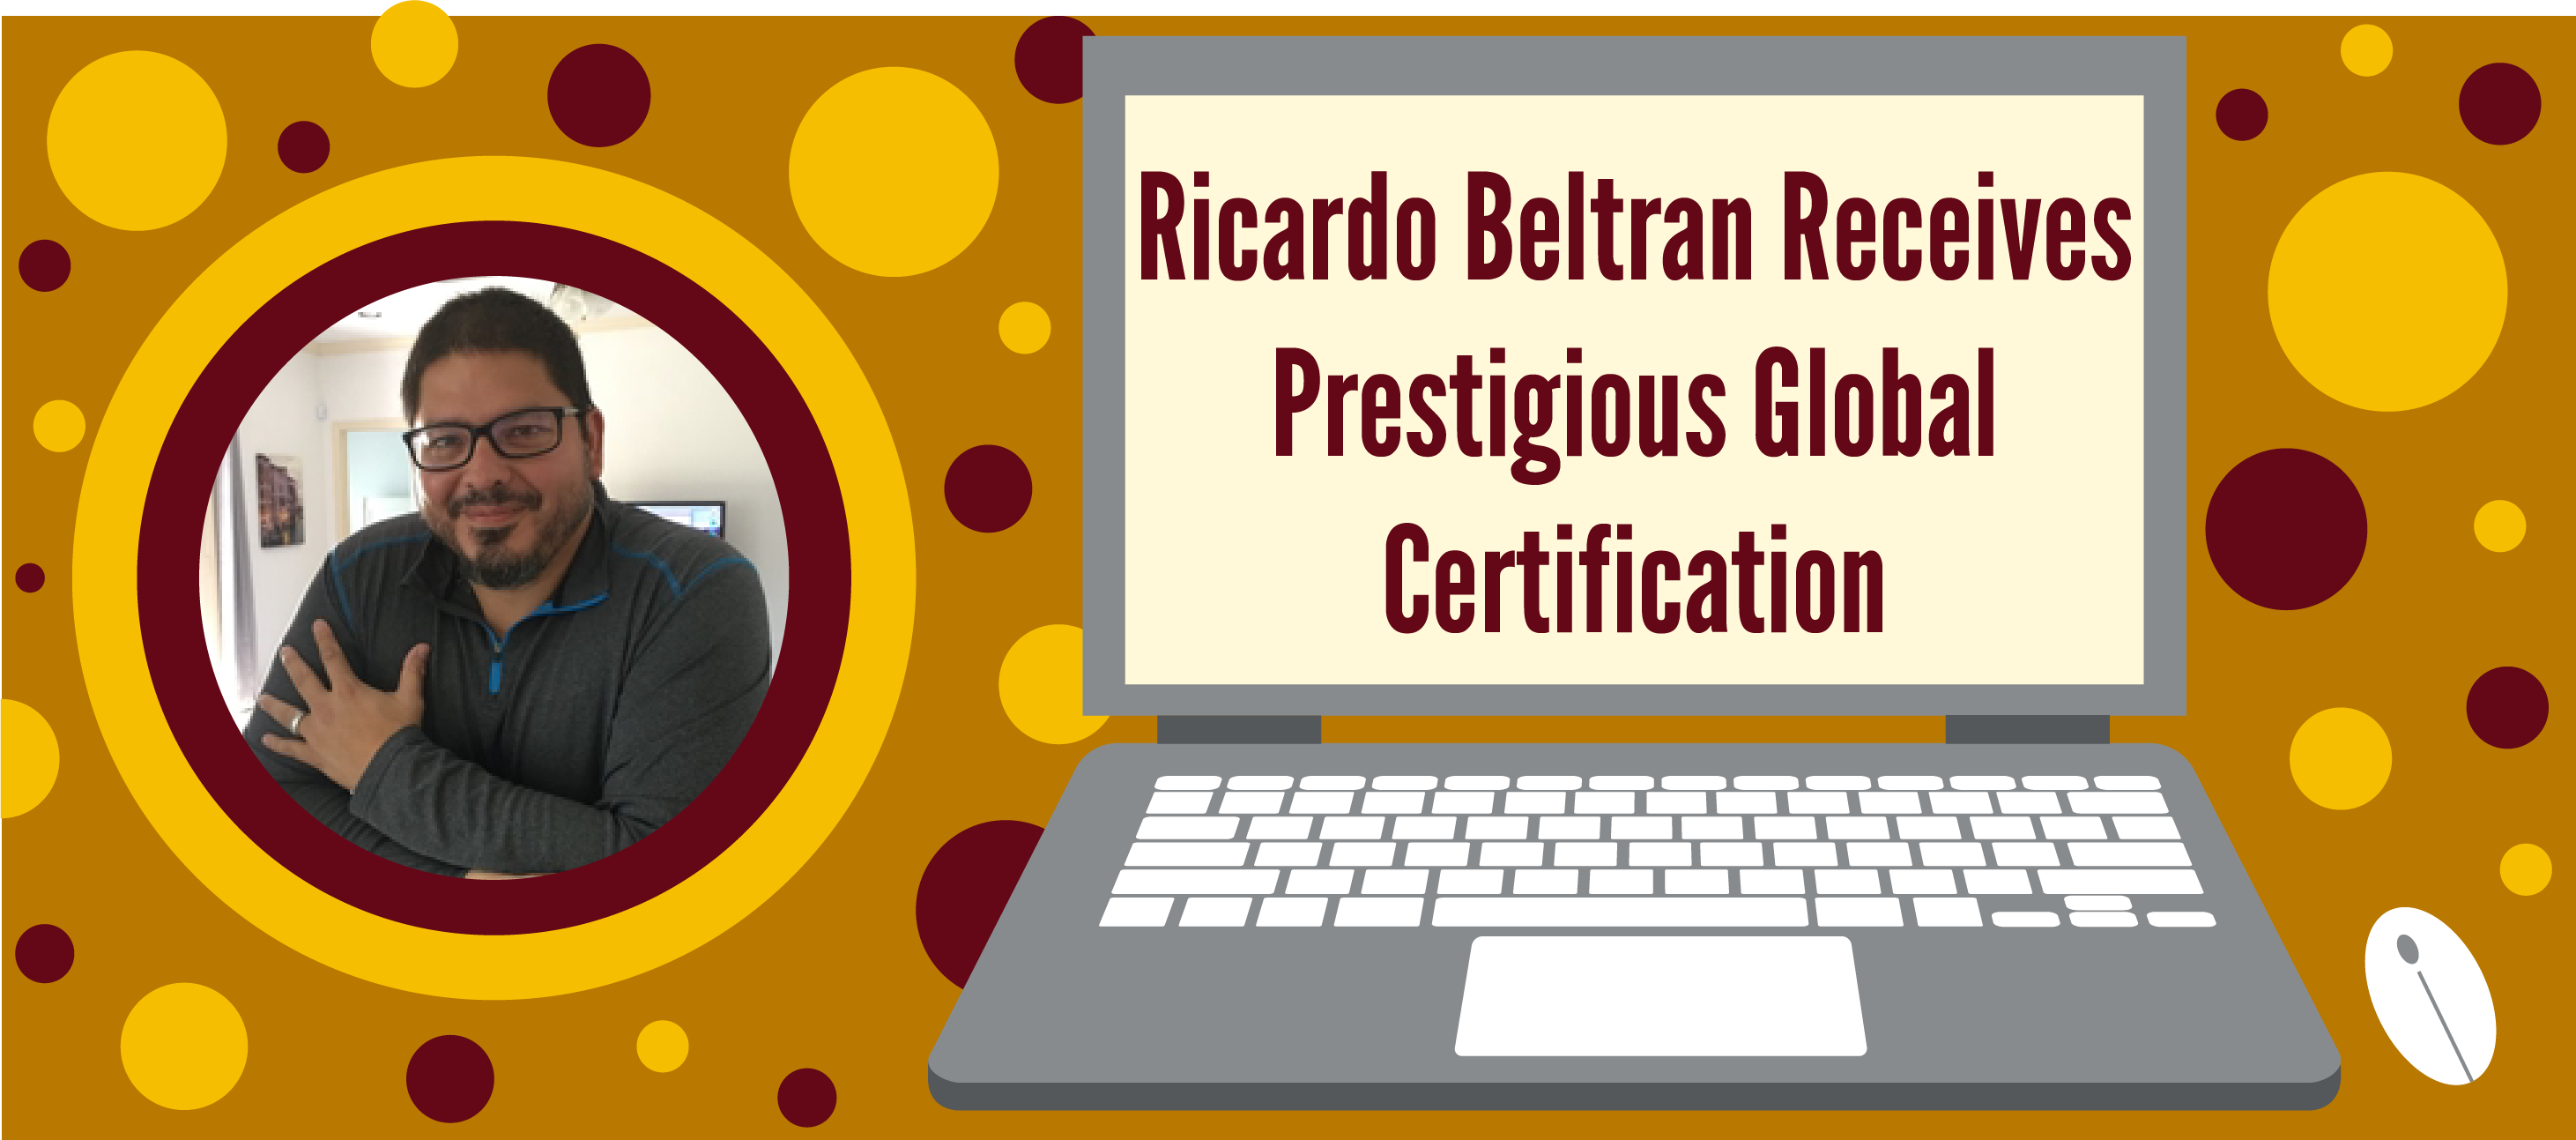 Ricardo Beltran Receives  Prestigious Global  Certification